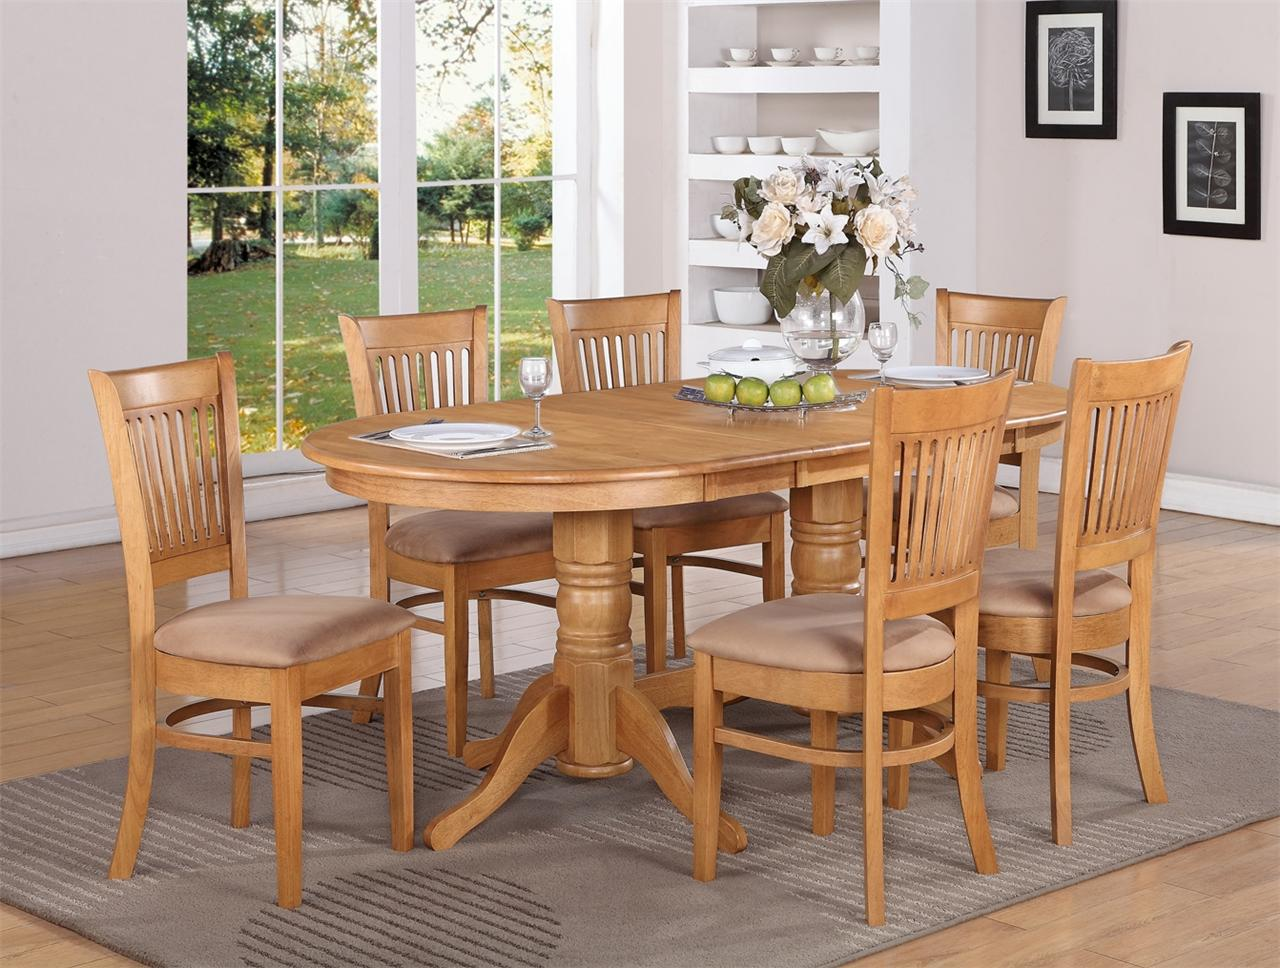 9 PC OVAL DINETTE DINING ROOM SET TABLE amp 8 UPHOLSTERED